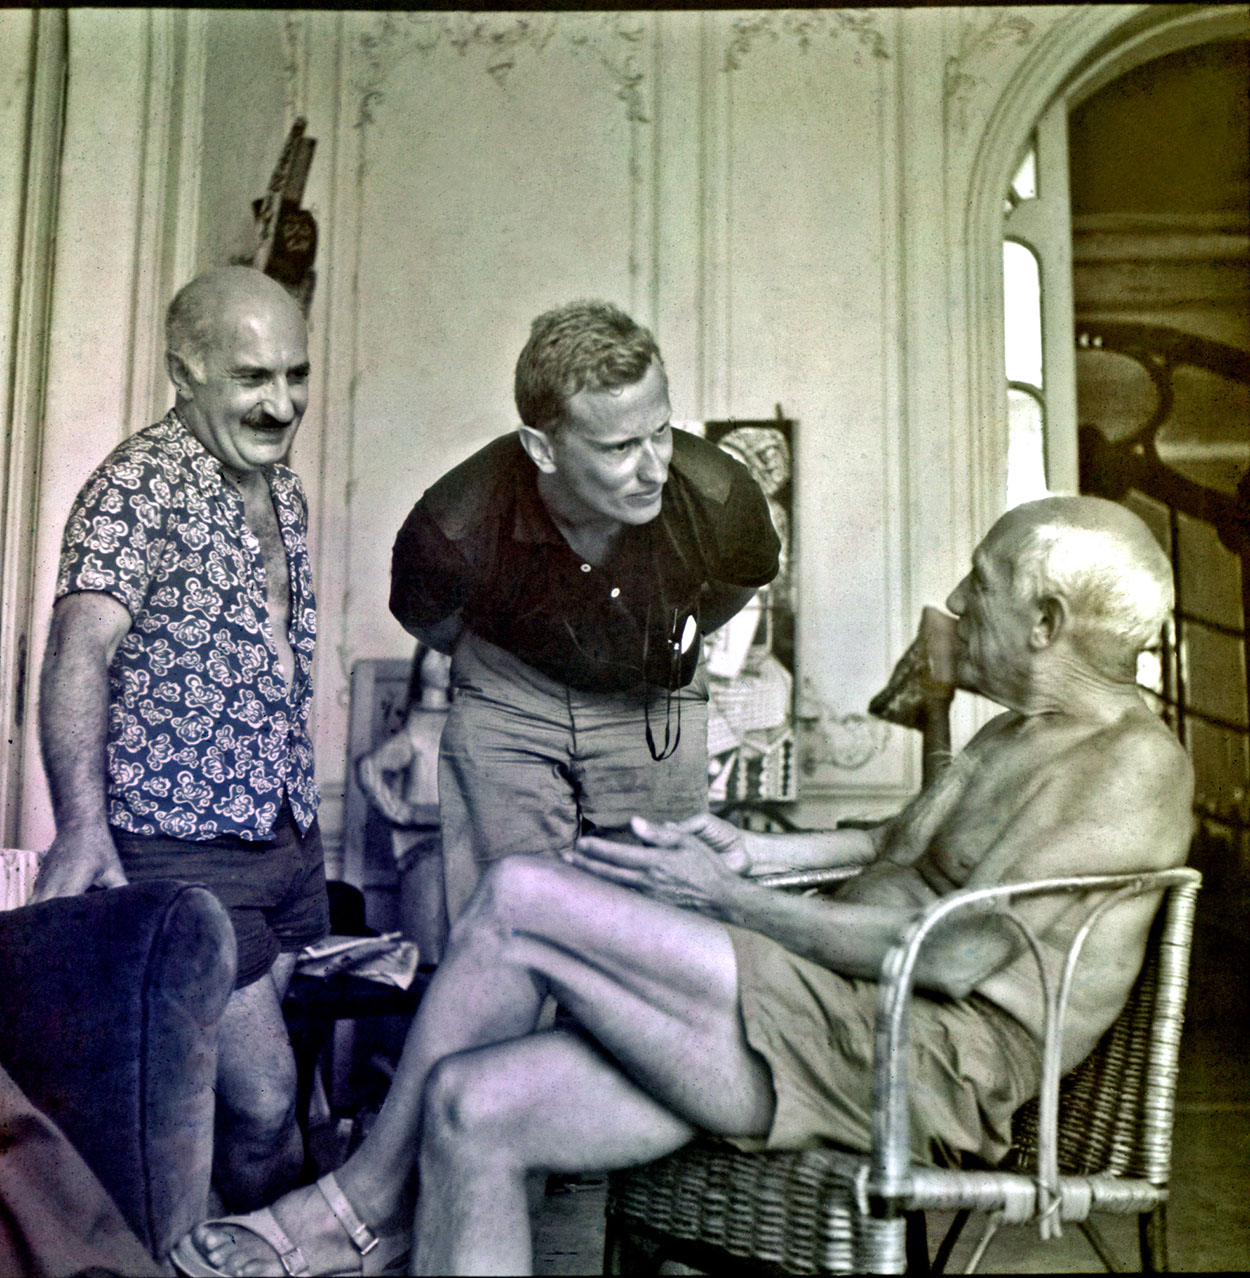 "Fred Baldwin (center) with Pablo Picasso, at the painter's home in Cannes, July 1955. ""In July 1955, I met Pablo Picasso.  I was a college student.  He was my imaginary father. I delivered an illustrated letter to his doorstep in Cannes explaining why I had to see him. I was scared to death, but it worked.  He was amused by my humor and tenacity and opened his door. I spent the day with him. It changed my life. After this experience, I felt that I could do anything I set out to do.  It became my Picasso mantra: 'You must have a dream, use your imagination, overcome your fear and act.' This set in motion much of what is described in this book.""  © Fred Baldwin"